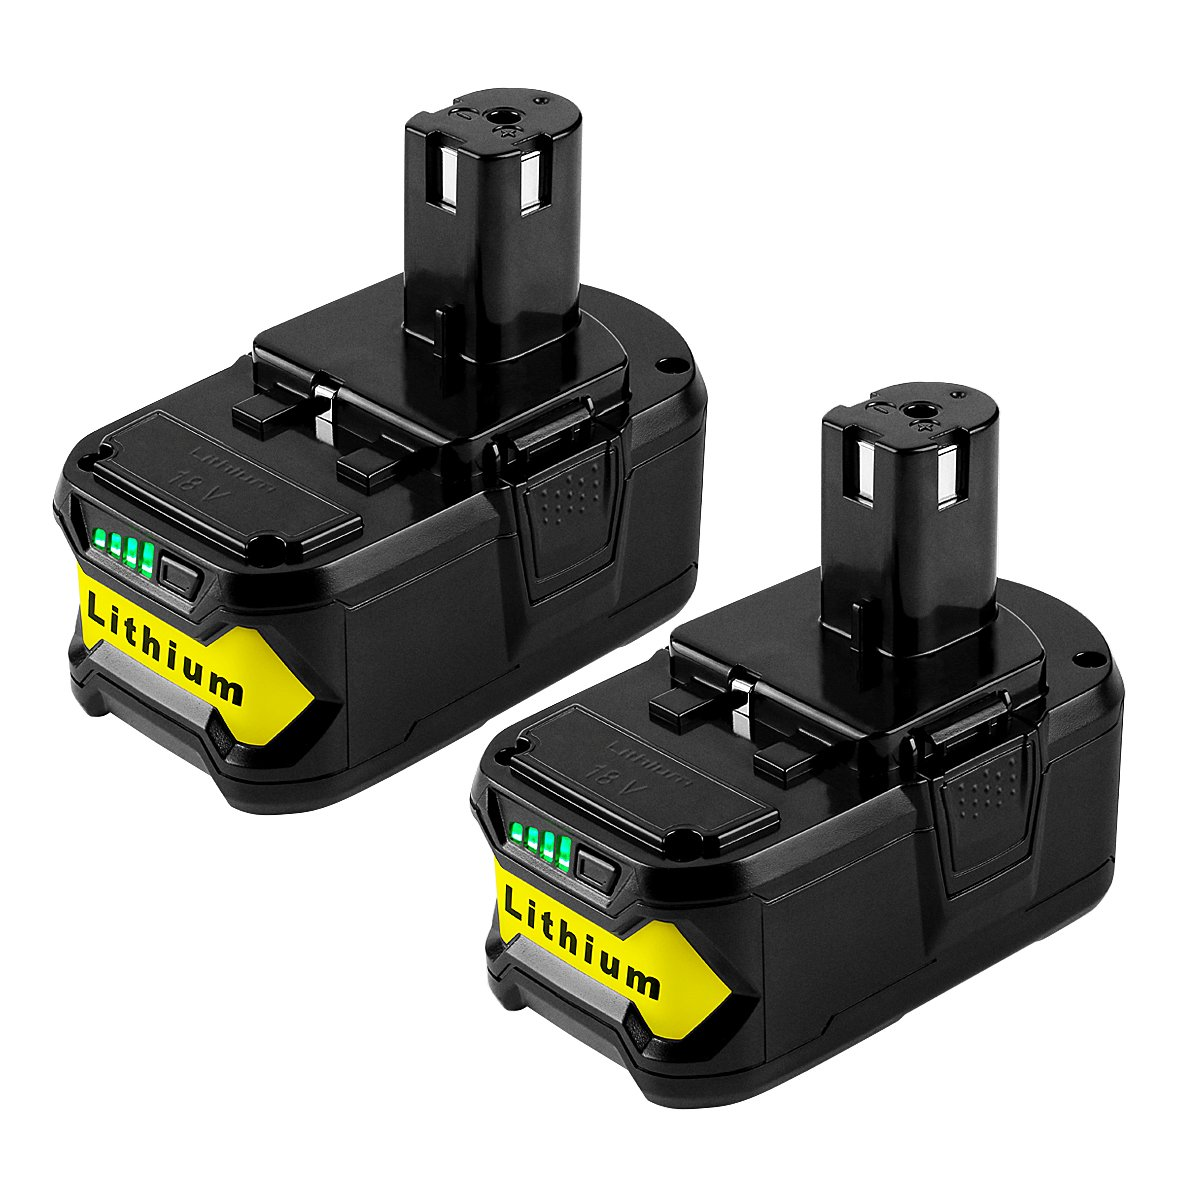 [Upgrade] ANTRobut 2Pack 5000mAh Ryobi 18V Lithium Battery Replacement for Ryobi 18-Volt ONE+ P108 P102 P103 P104 P105 P107 P109 P122 Cordless Power Tools